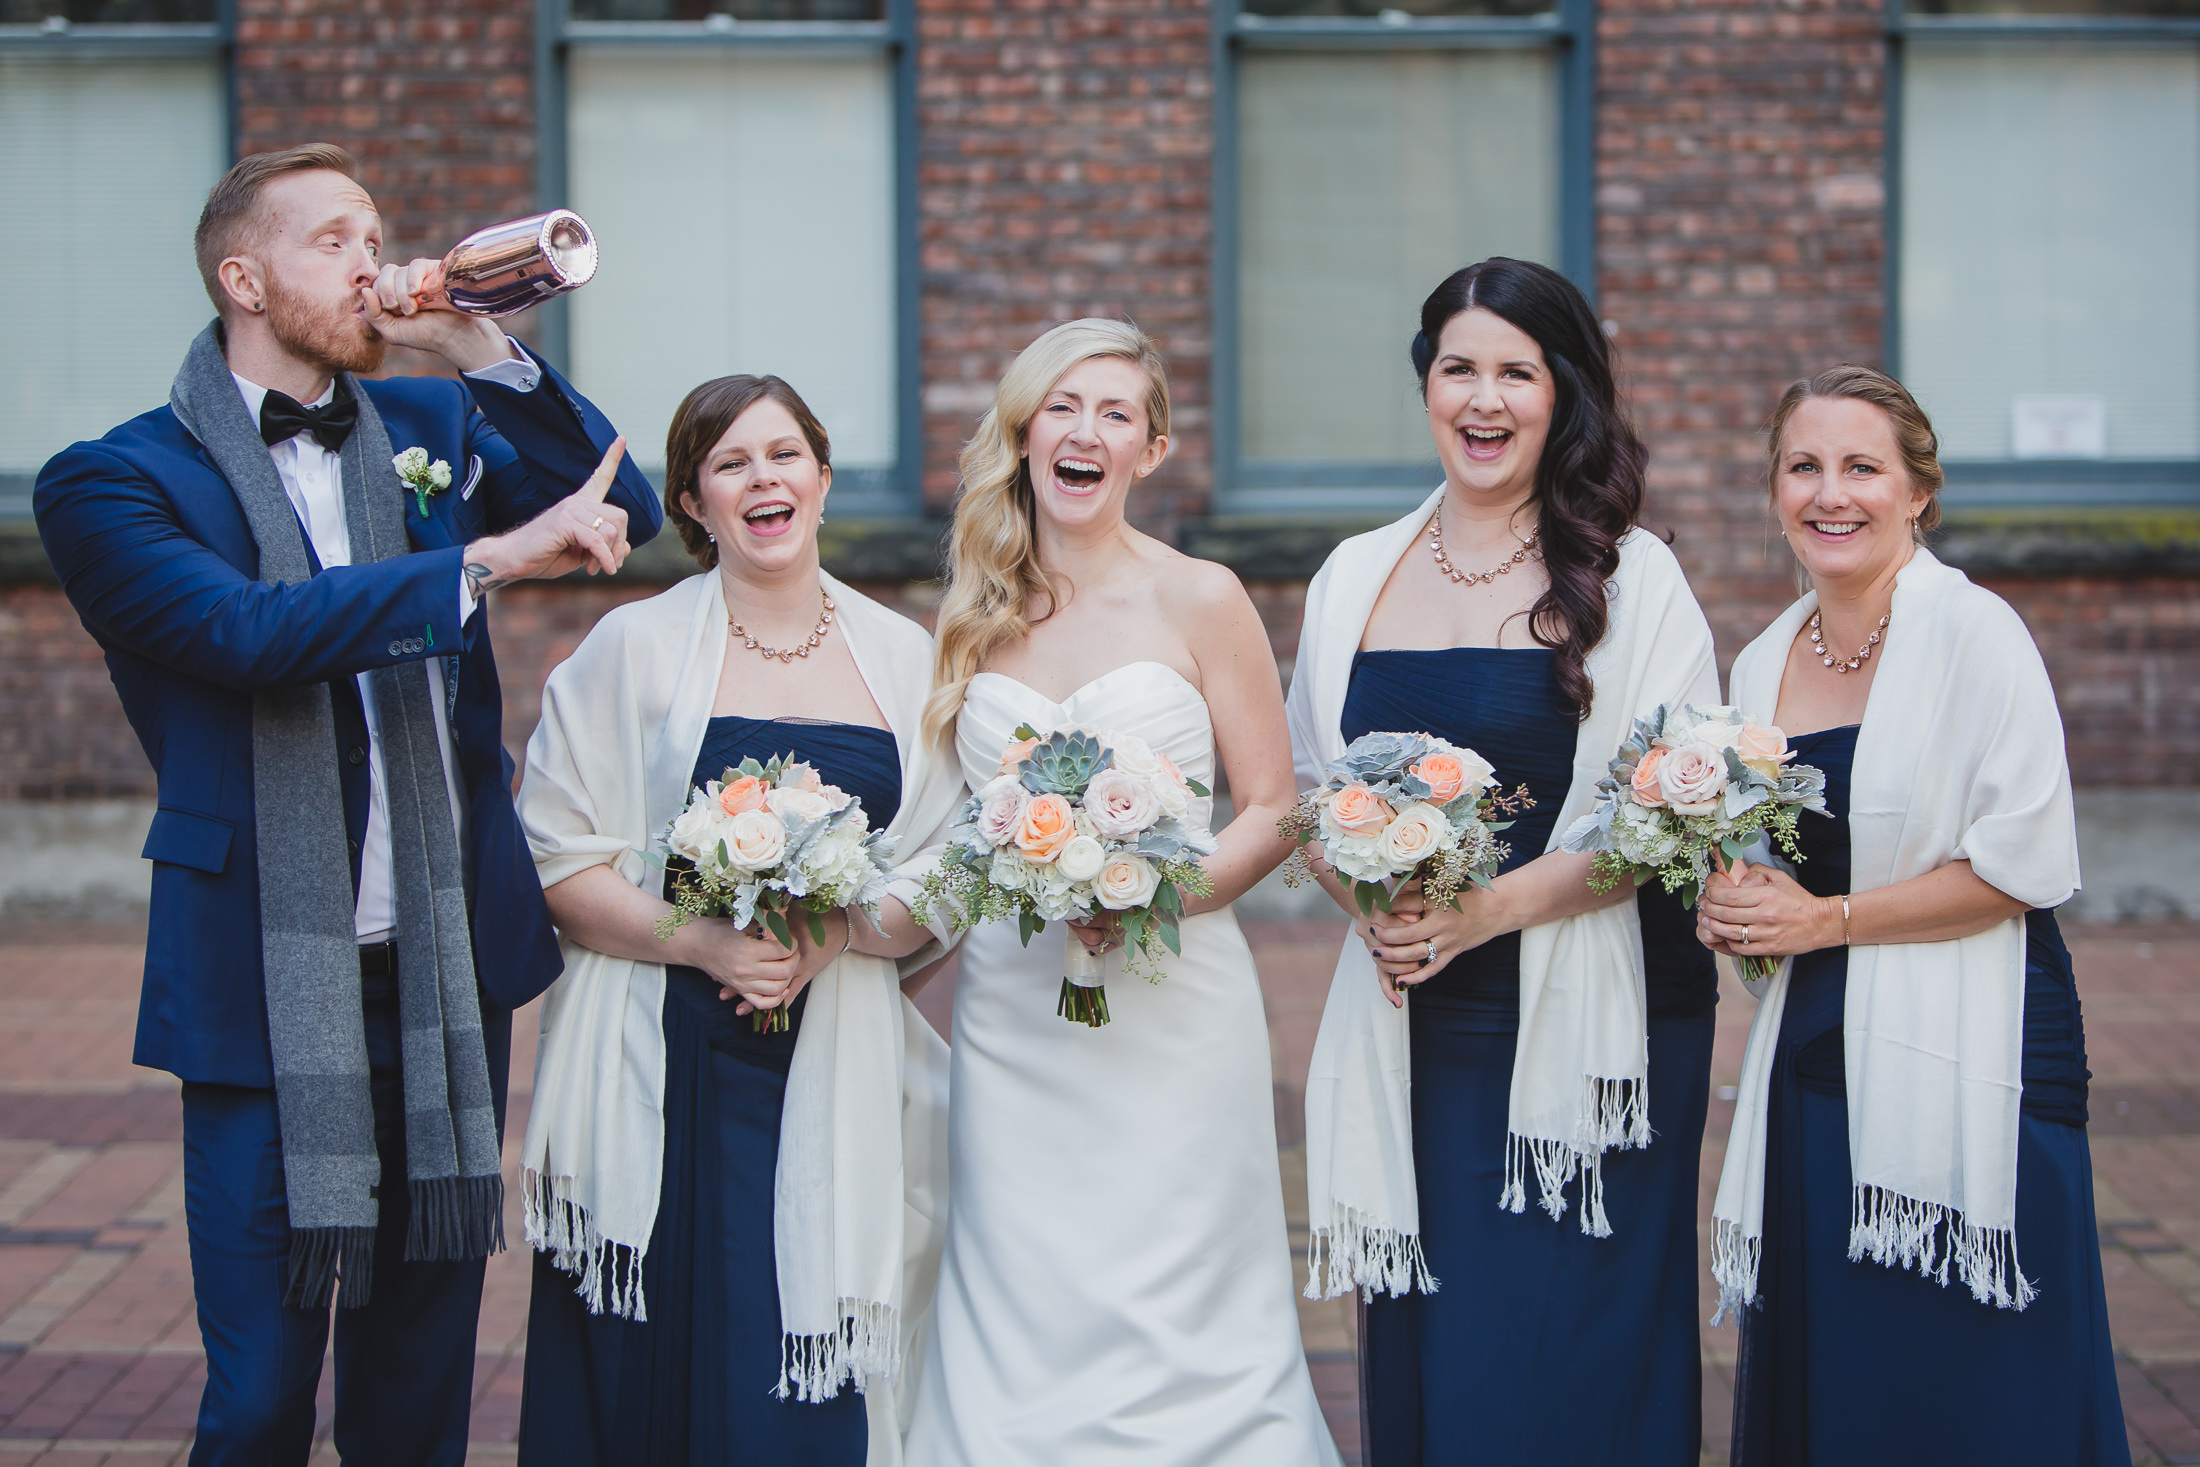 urban wedding party photo in yaletown vancouver, drinking champagne